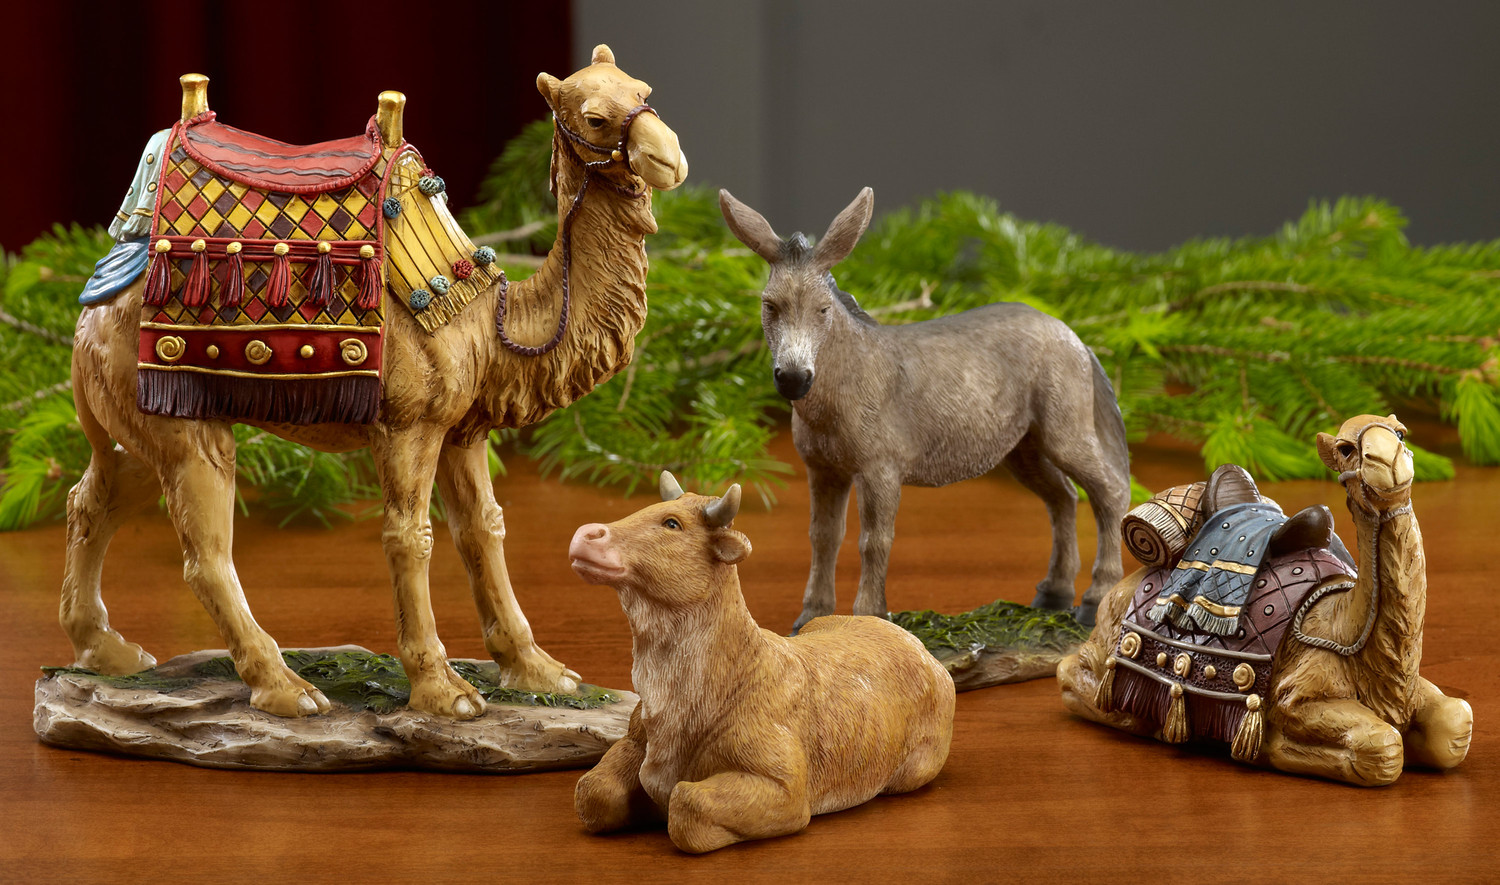 chic nativity sets with two camels and horse for christmas decor ideas